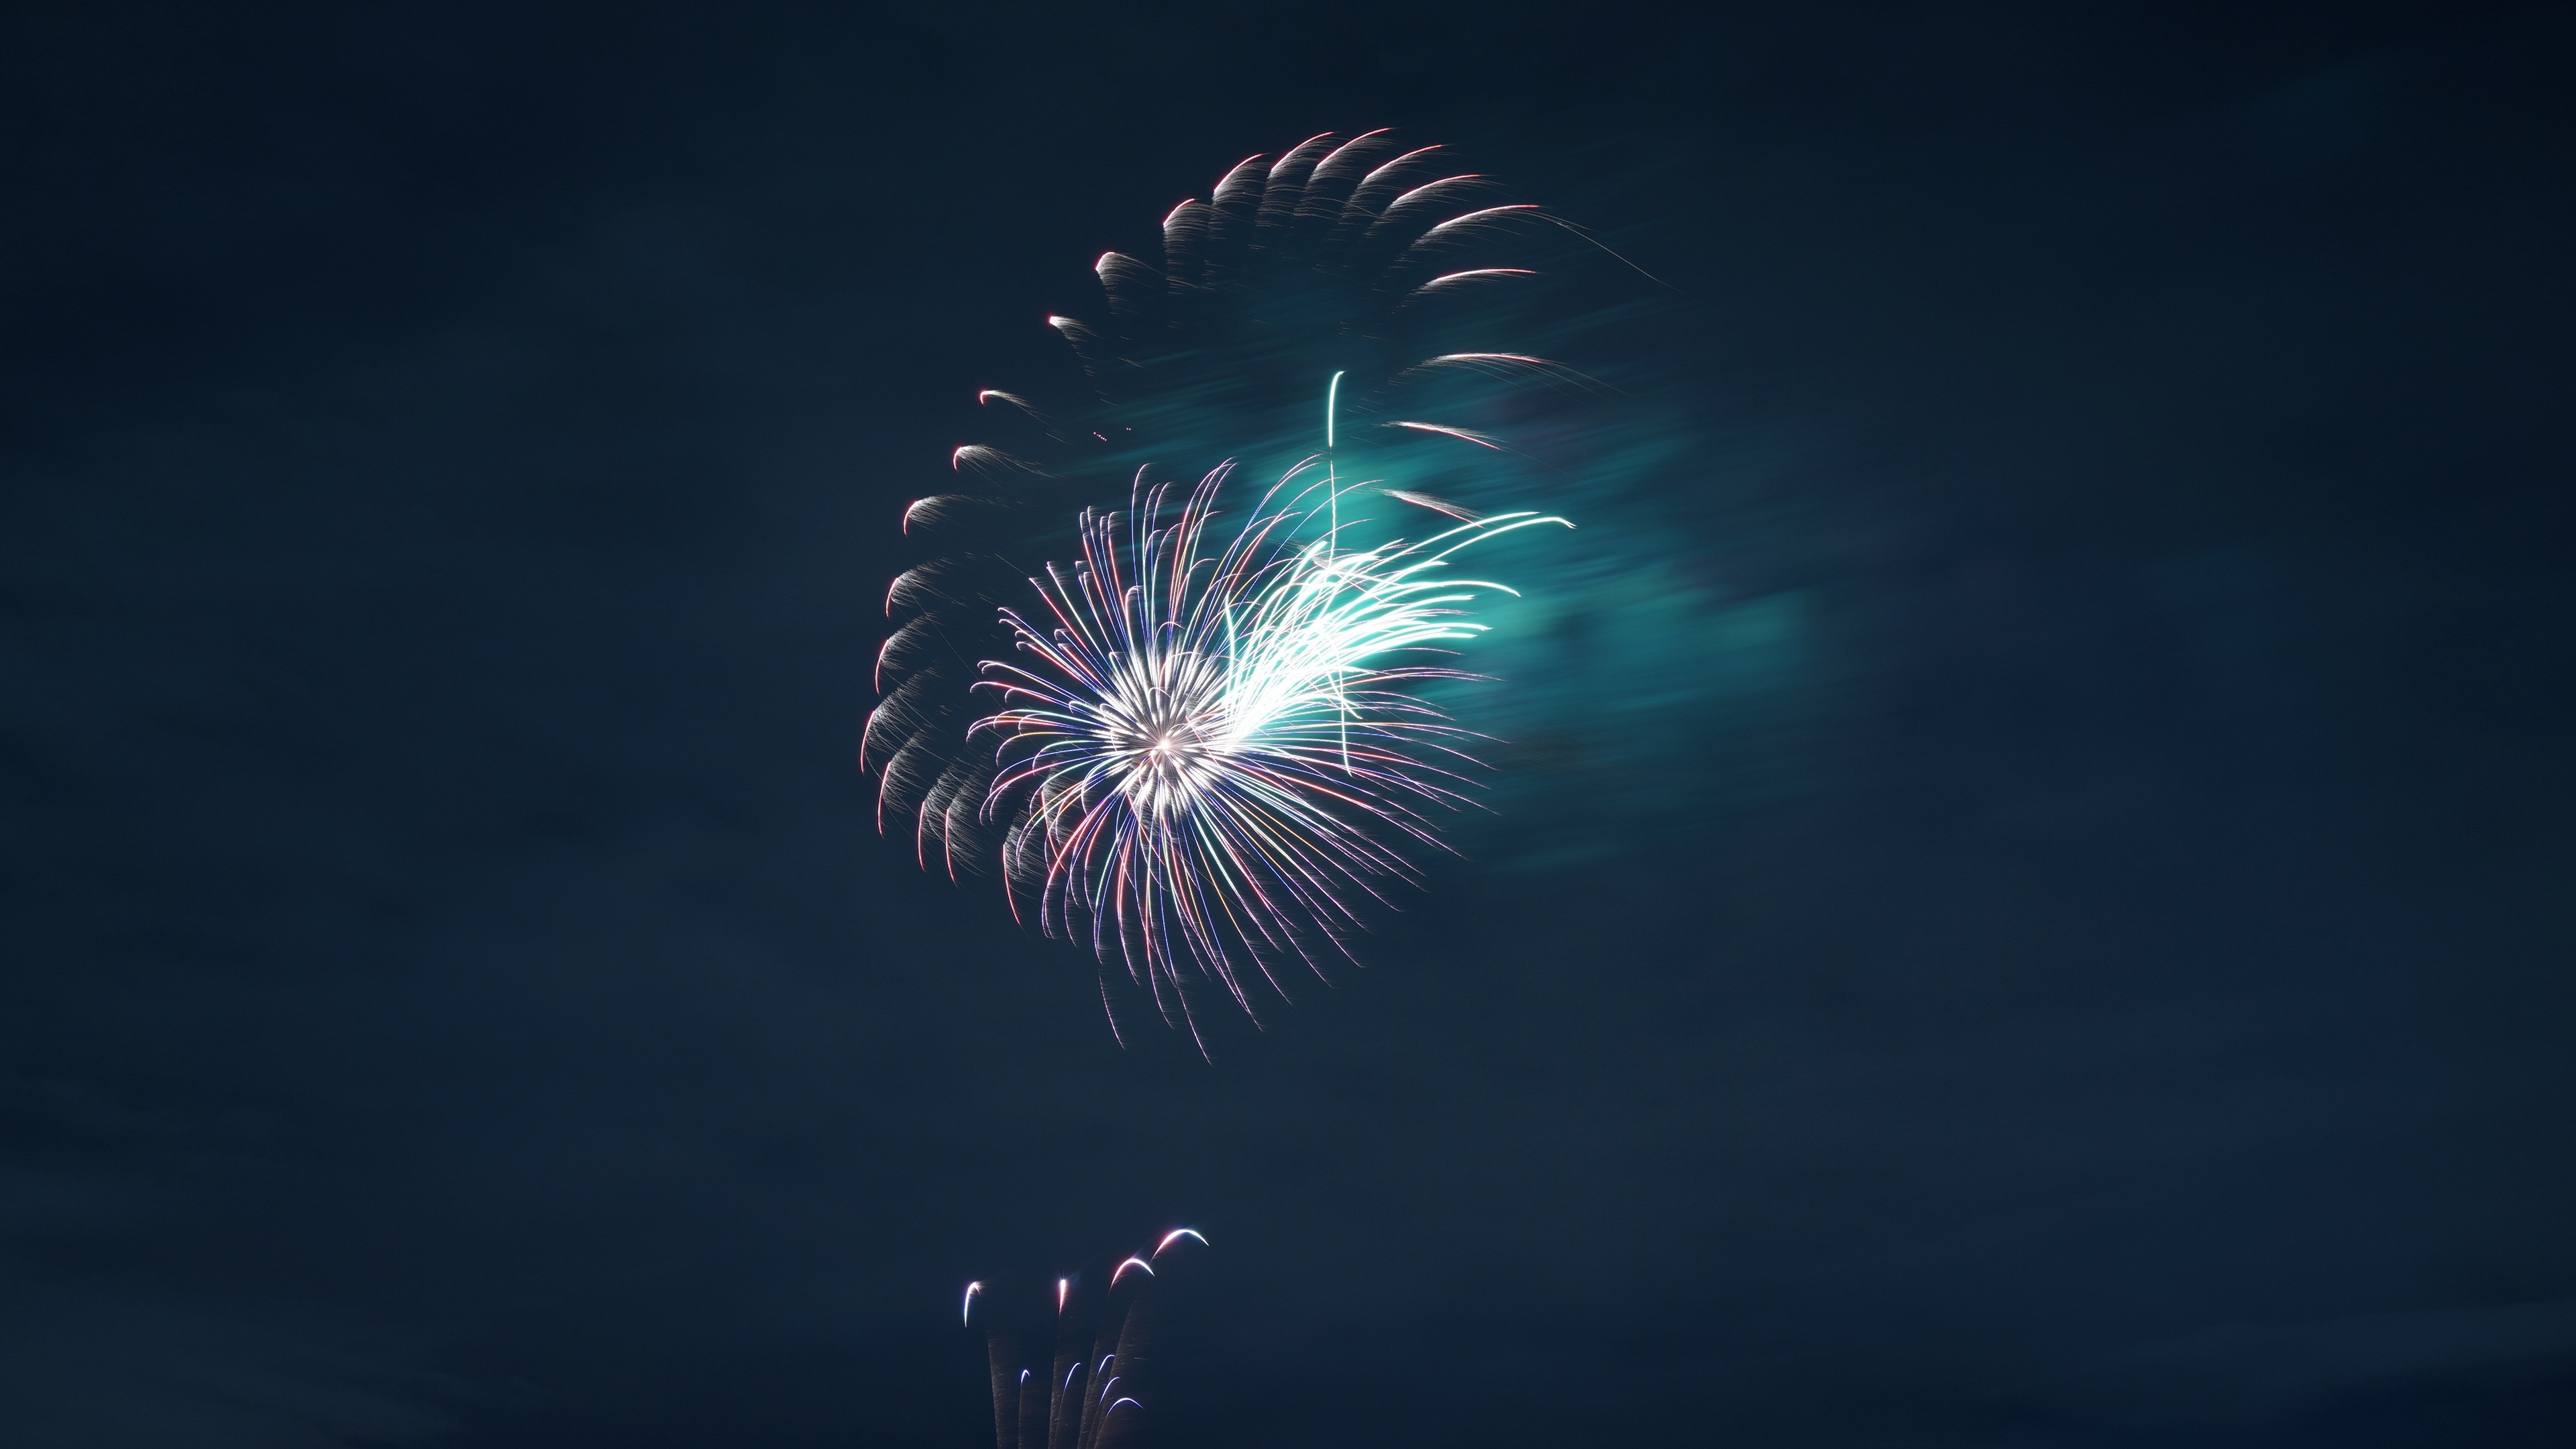 fireworks night 4k 1543946572 - Fireworks Night 4k - night wallpapers, hd-wallpapers, fireworks wallpapers, celebrations wallpapers, 4k-wallpapers